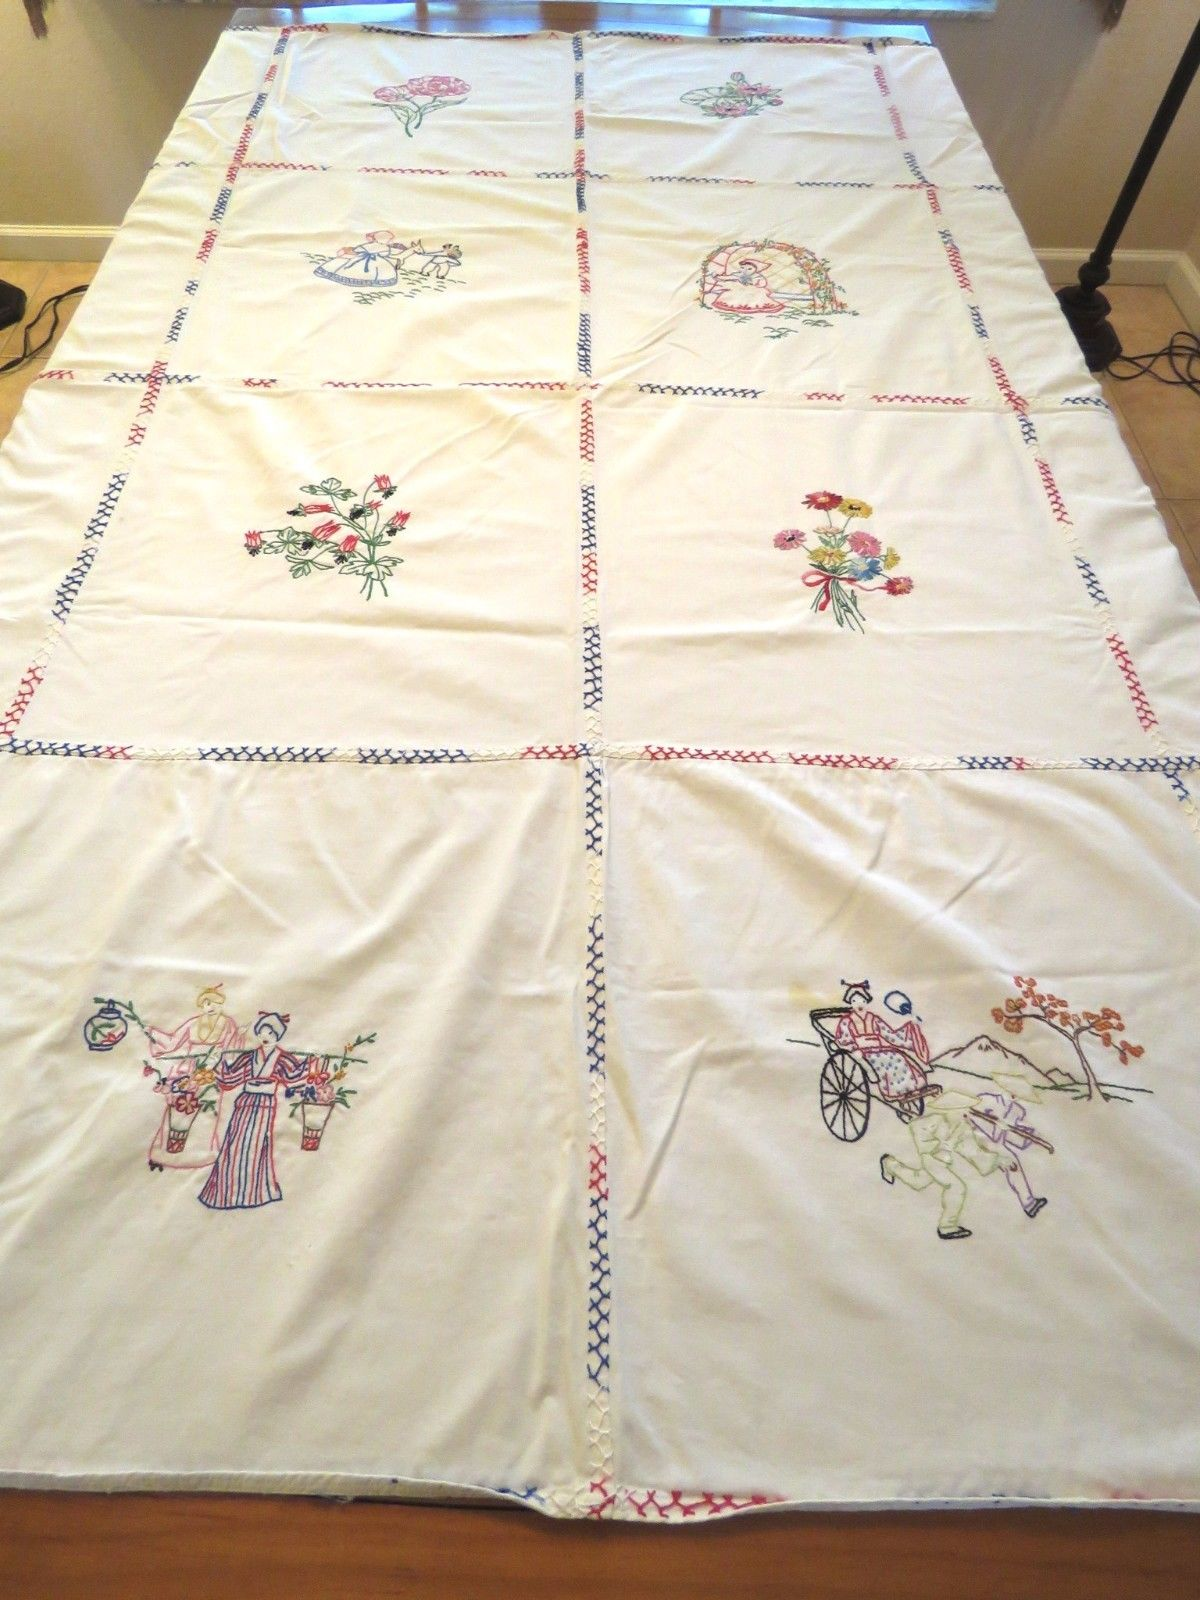 Vintage Bed Cover Cotton Hand embroidery Tablecloth Embroidered Figural Flowers (L&T-473)